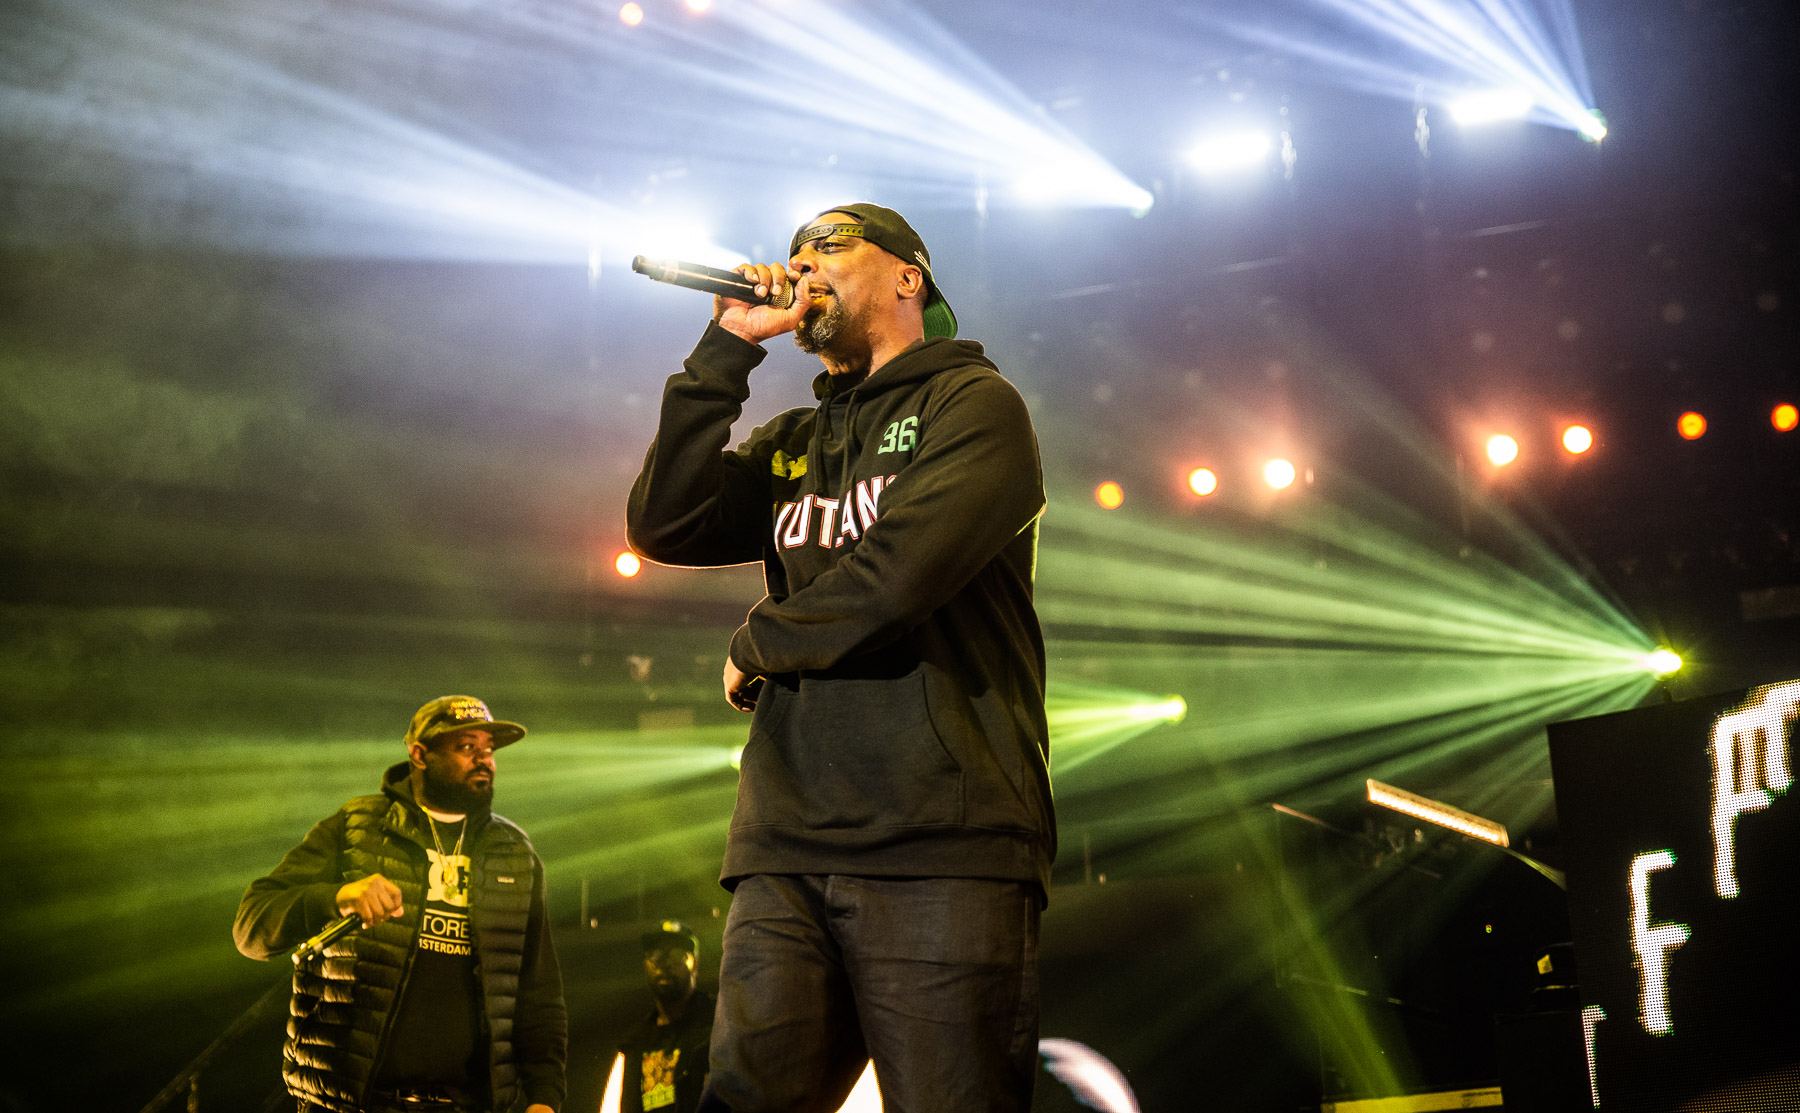 20190523-Gods_of_Rap-Wu_Tang_Clan@Oslo_Spektrum©WillyLarsenPhotography_DH (6 of 16)